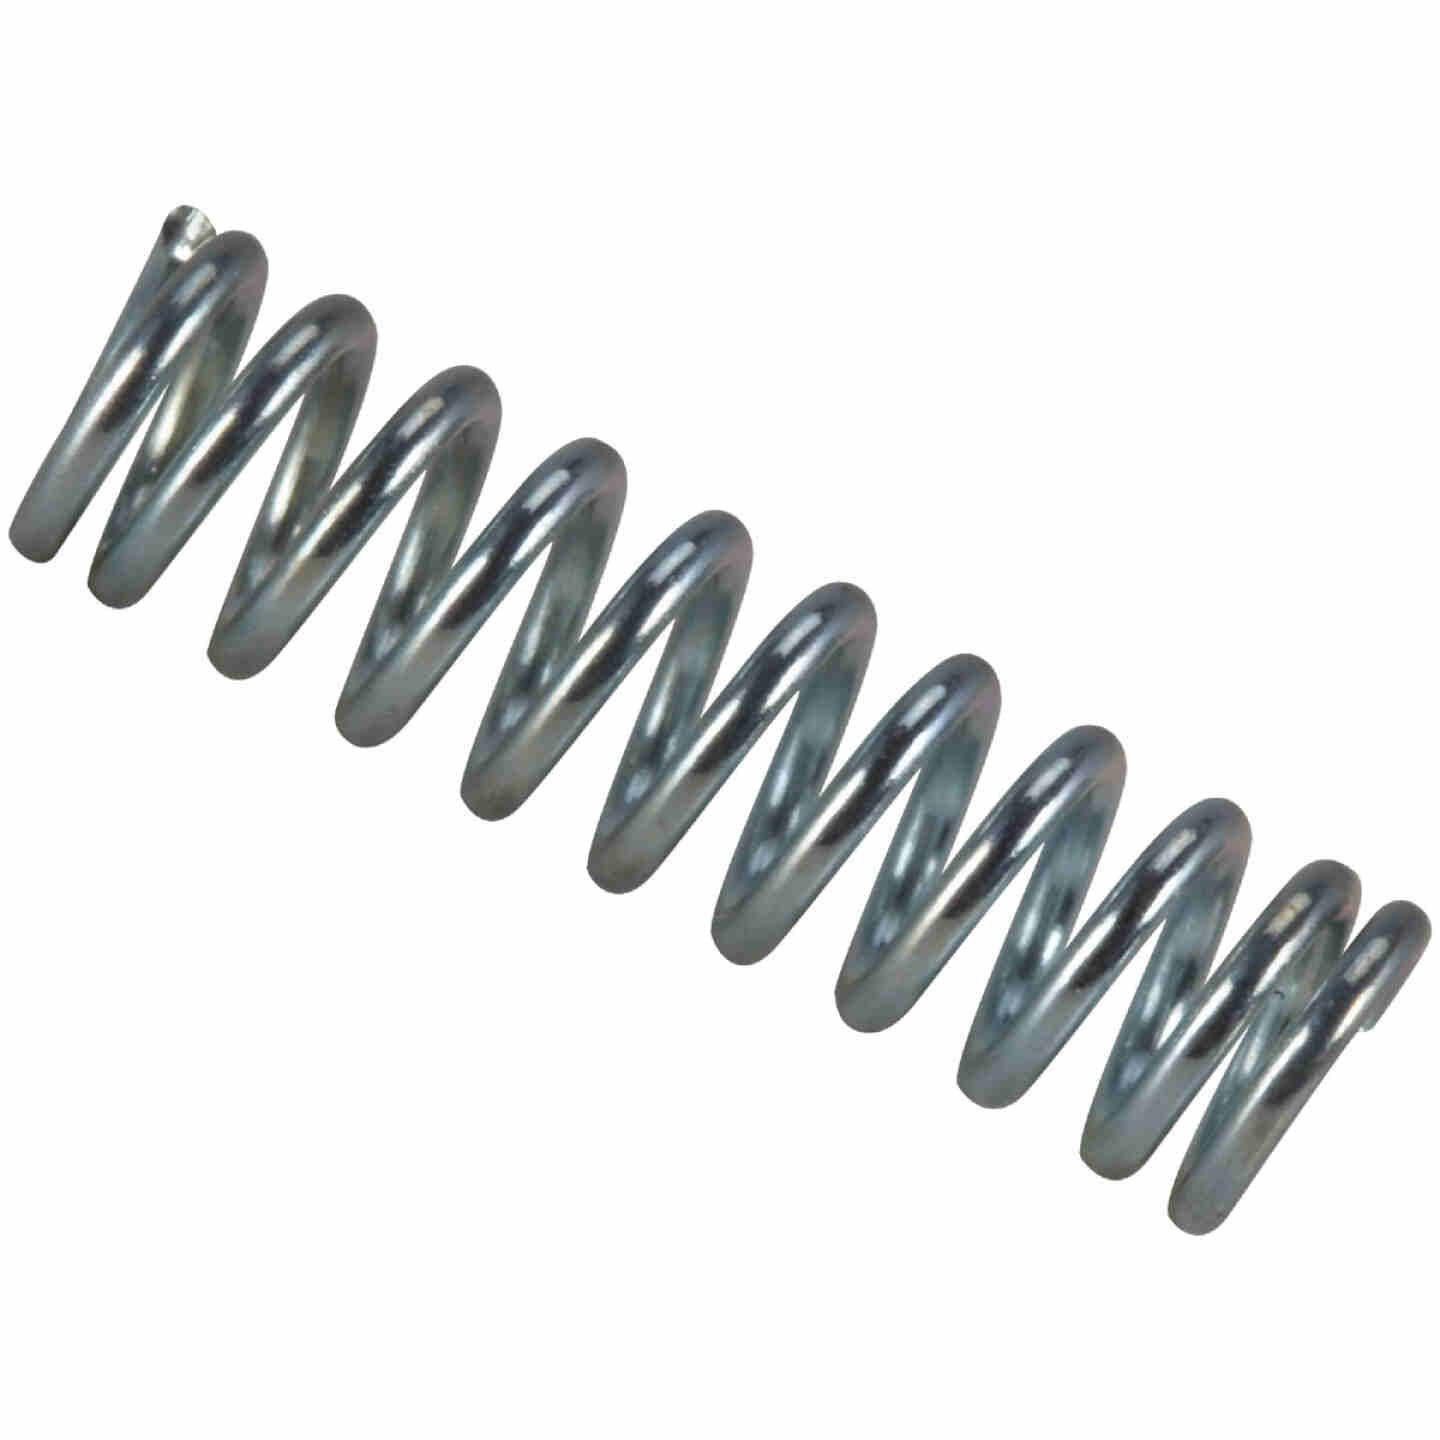 Century Spring 2-3/4 In. x 1-3/16 In. Compression Spring (2 Count) Image 1